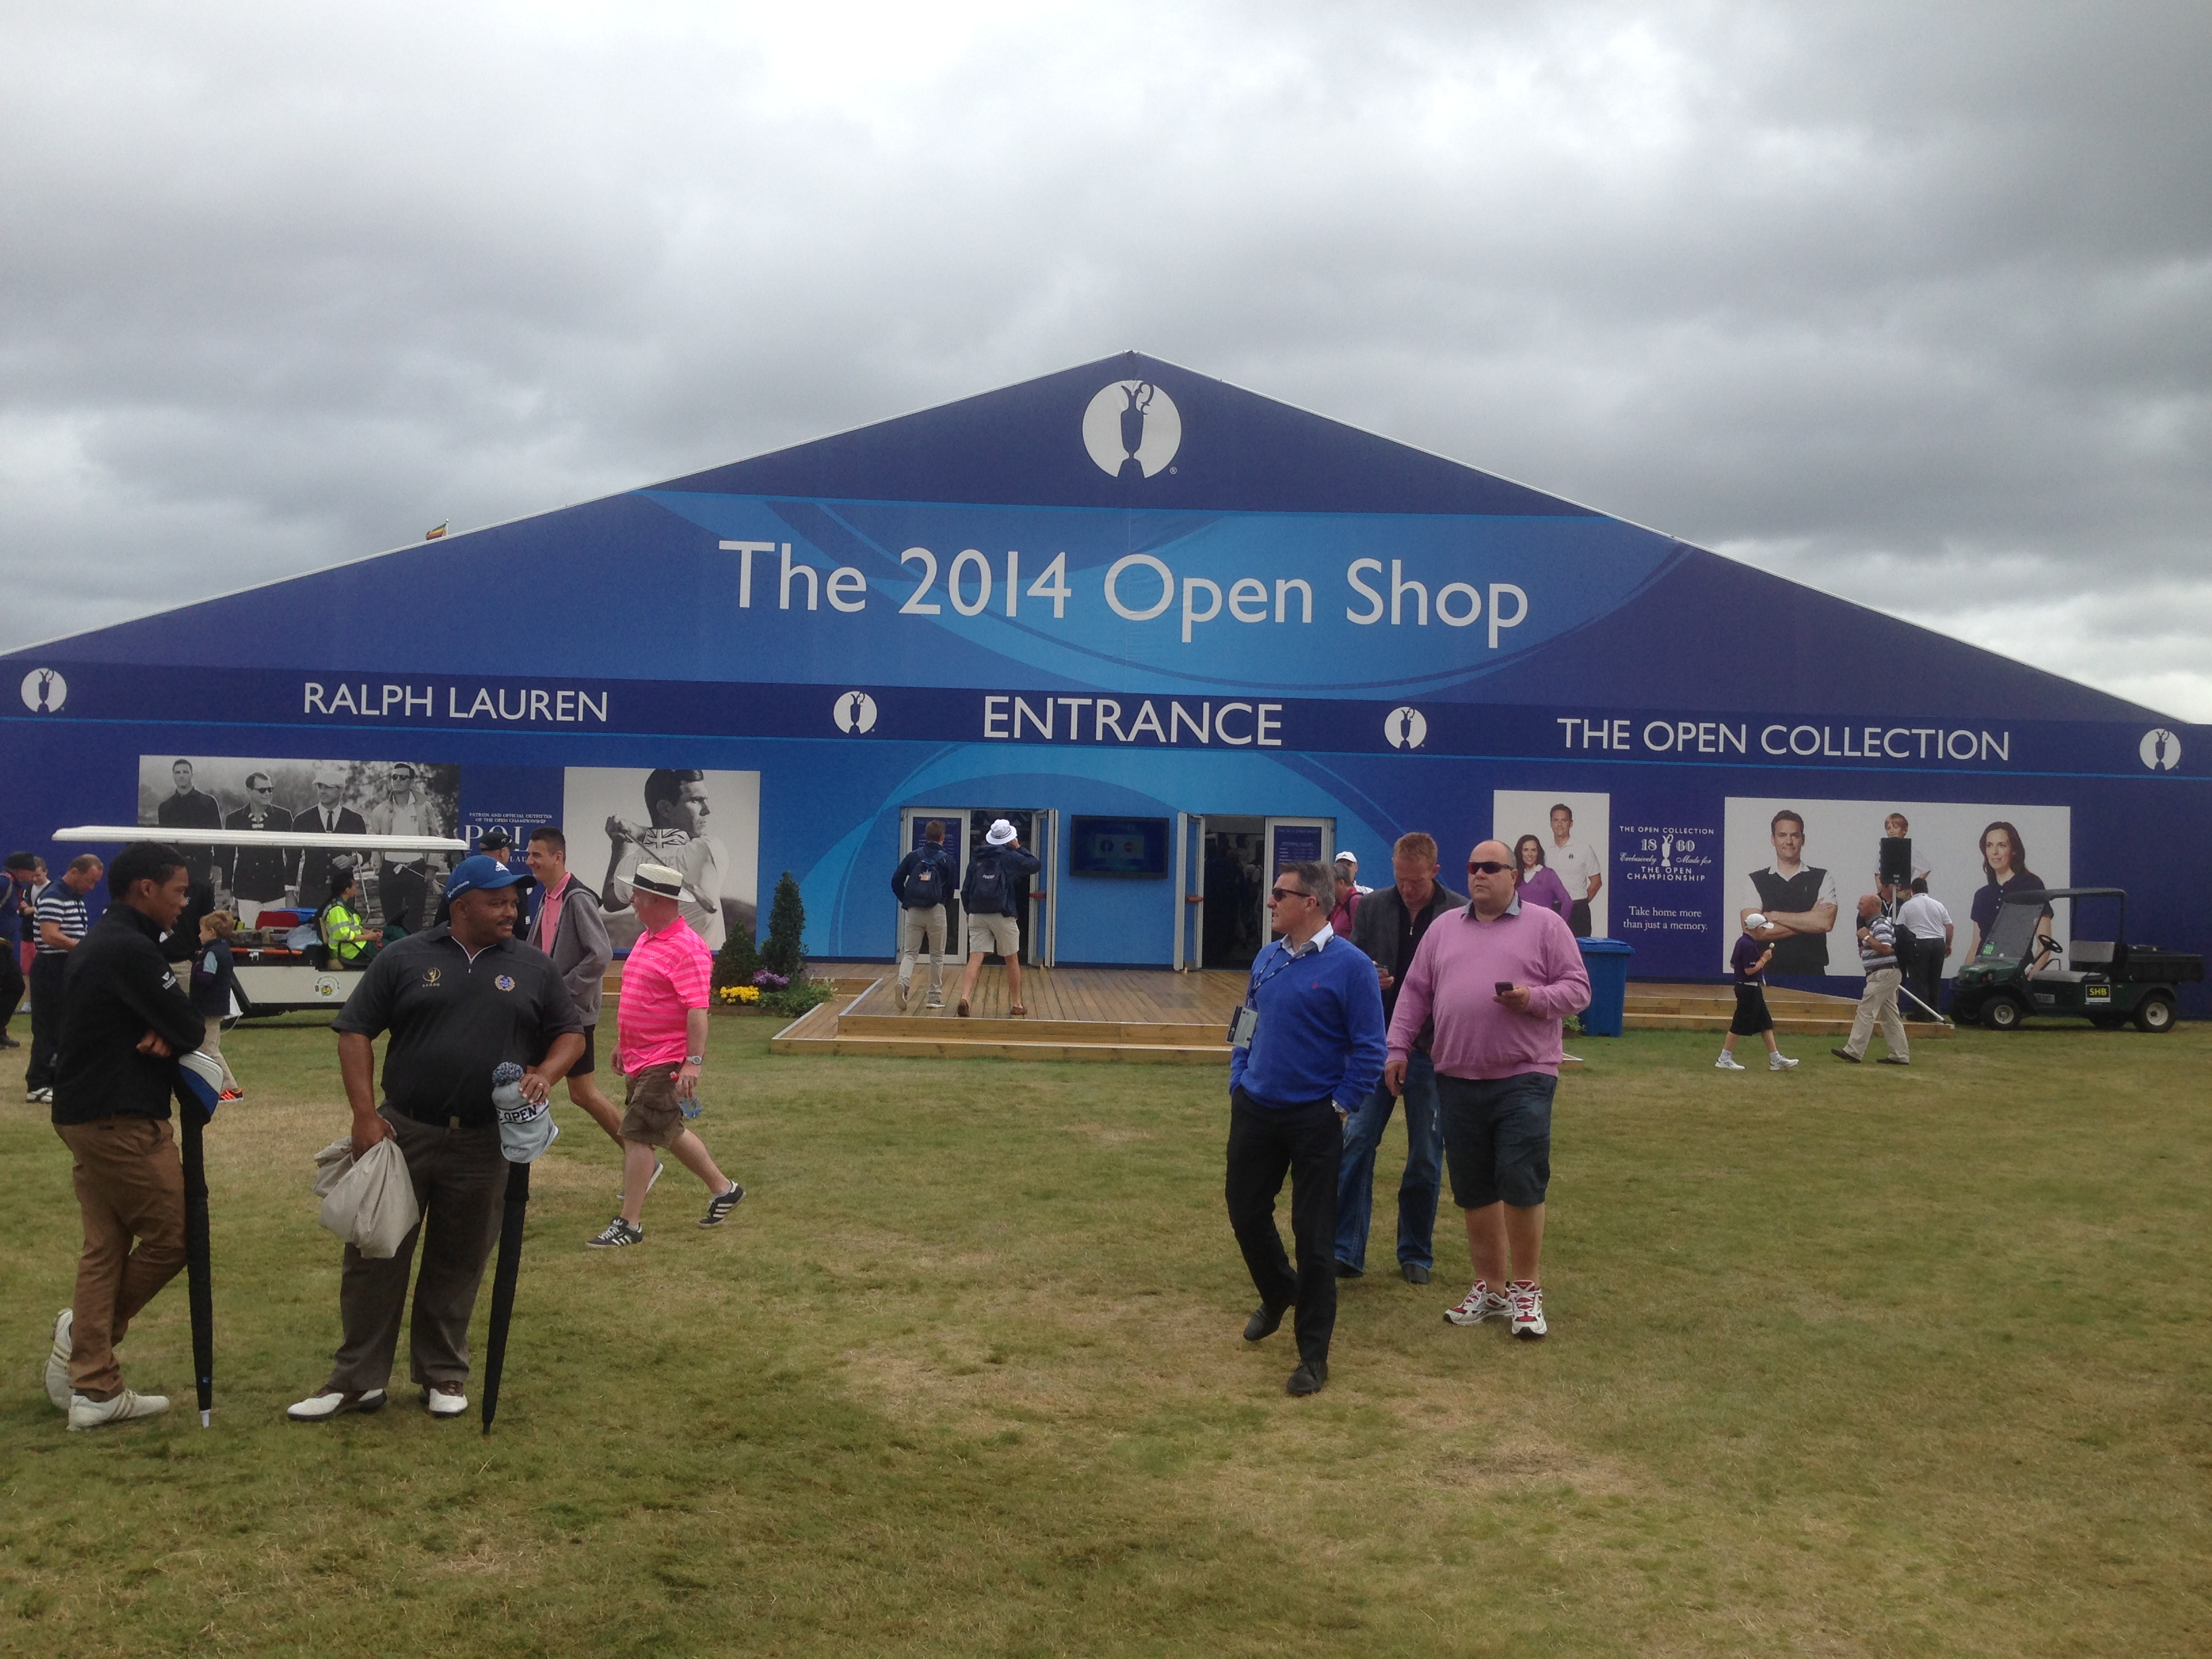 The Open: Roll up for your souvenir gear